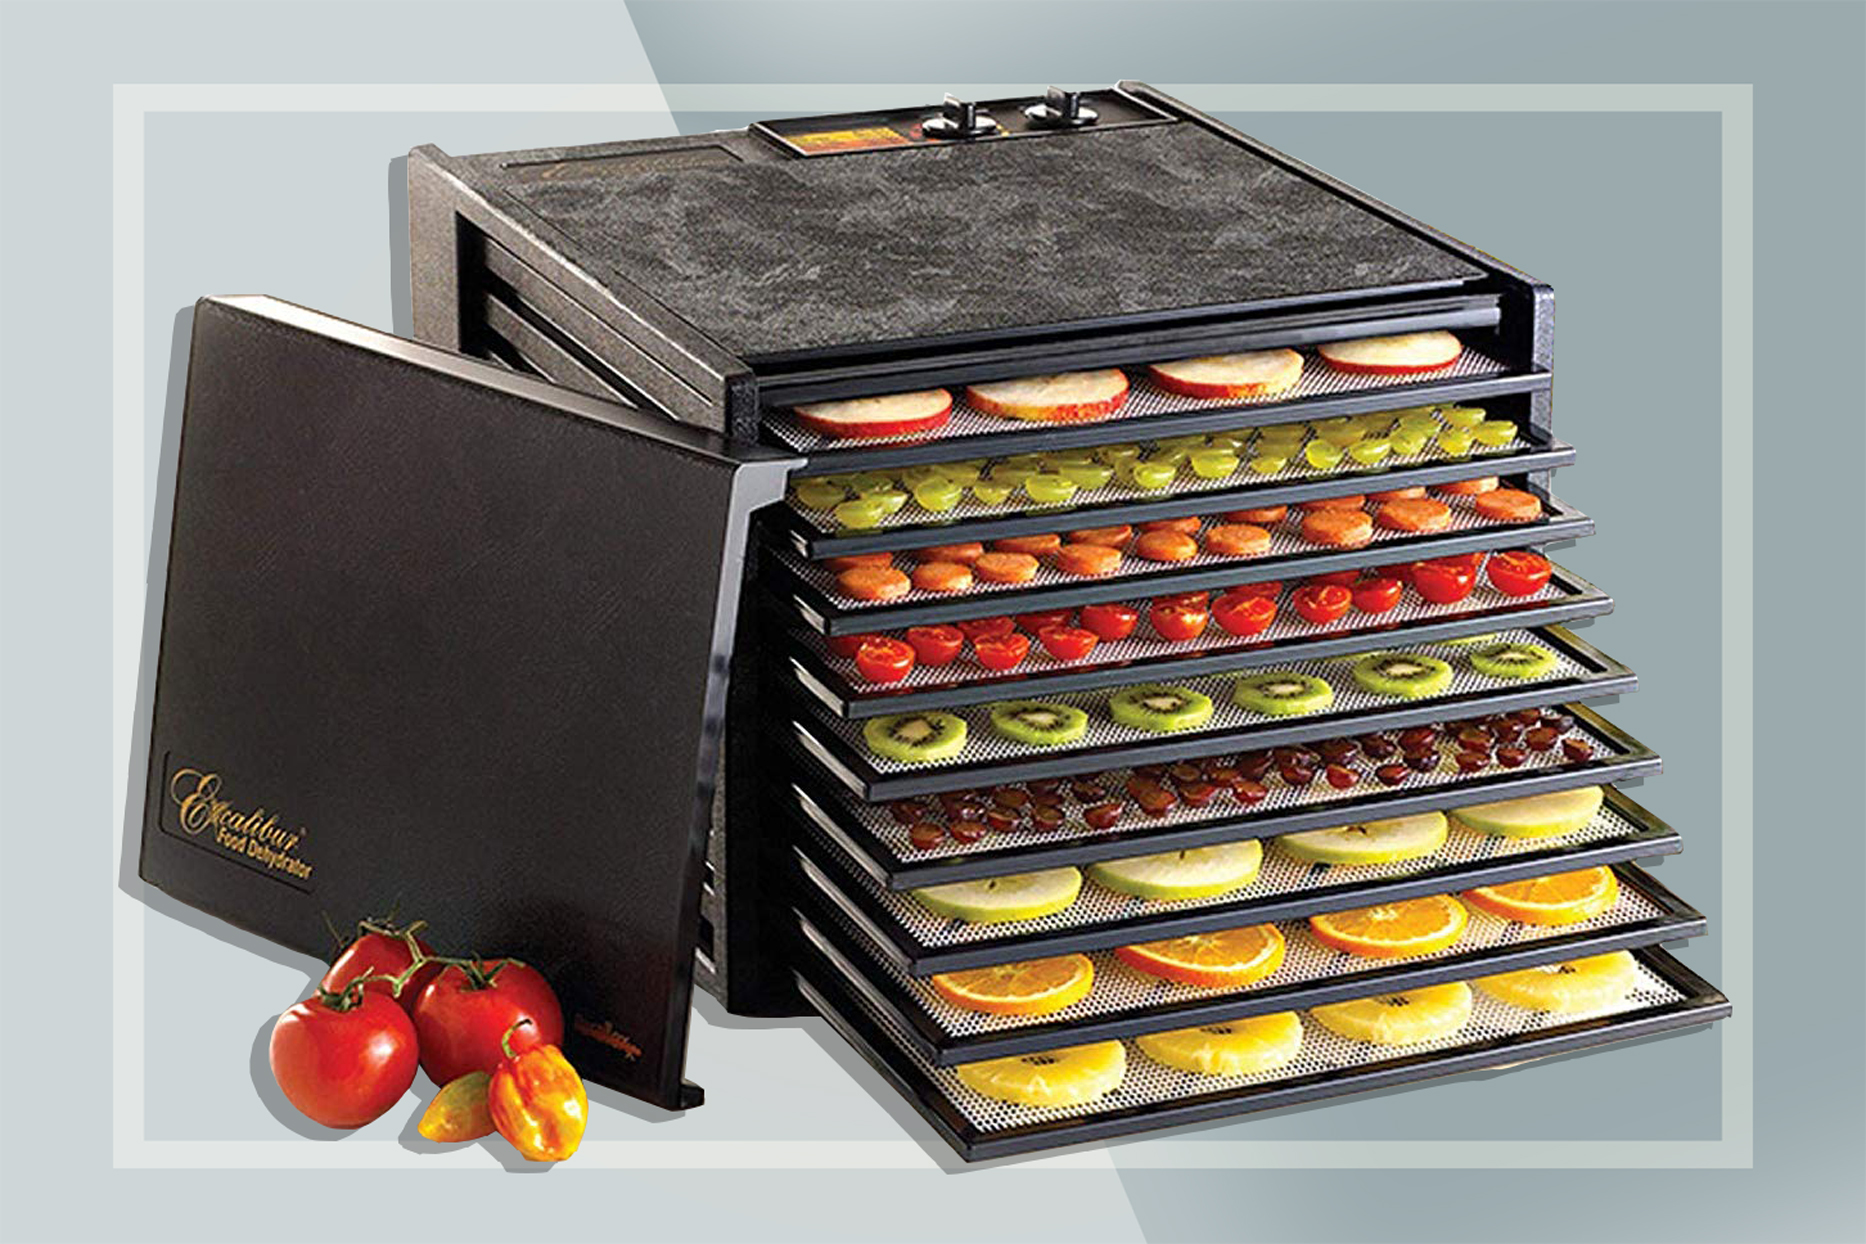 The 9 Best Food Dehydrators for 2021, According to Reviews | Food & Wine